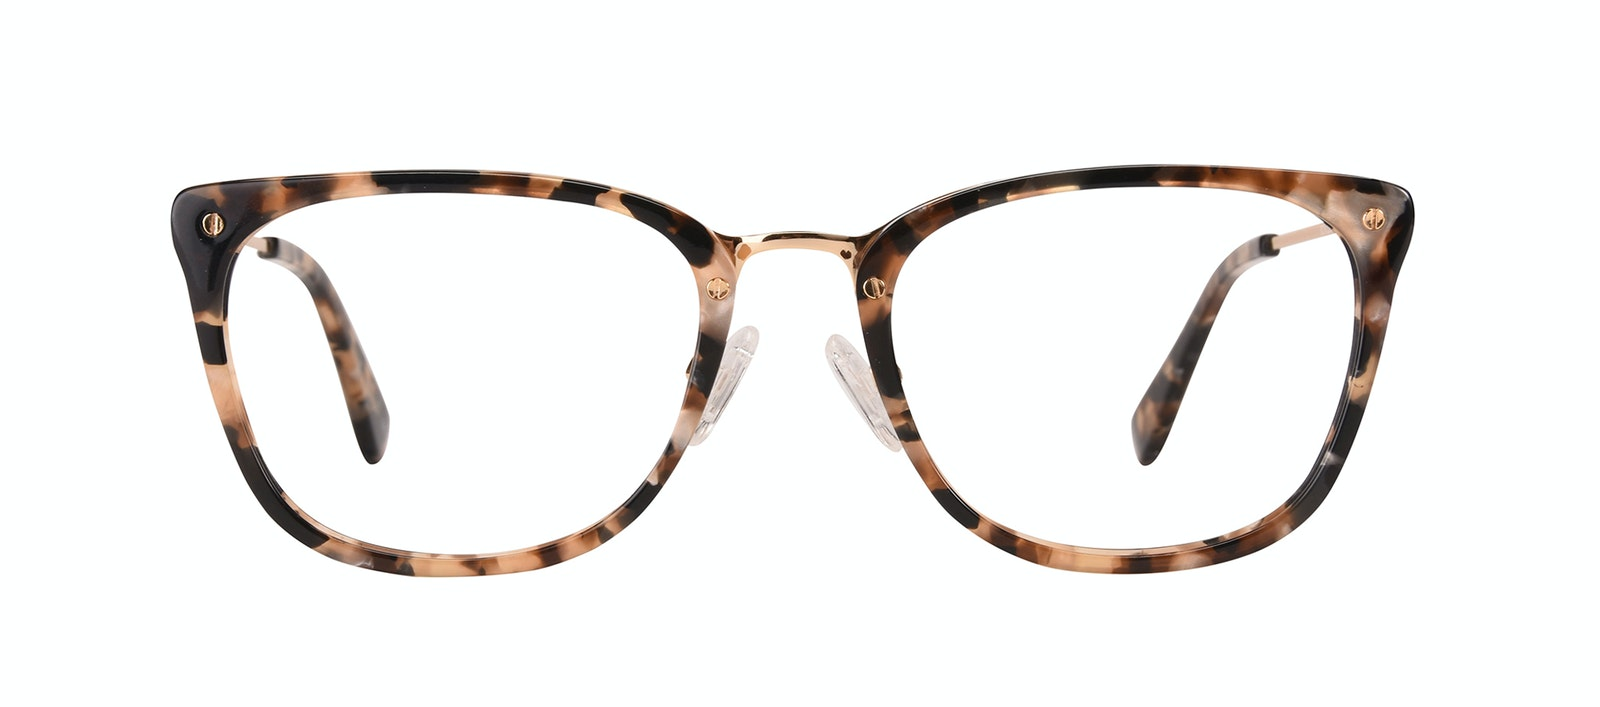 Affordable Fashion Glasses Rectangle Eyeglasses Women Wonder Gold Flake Front